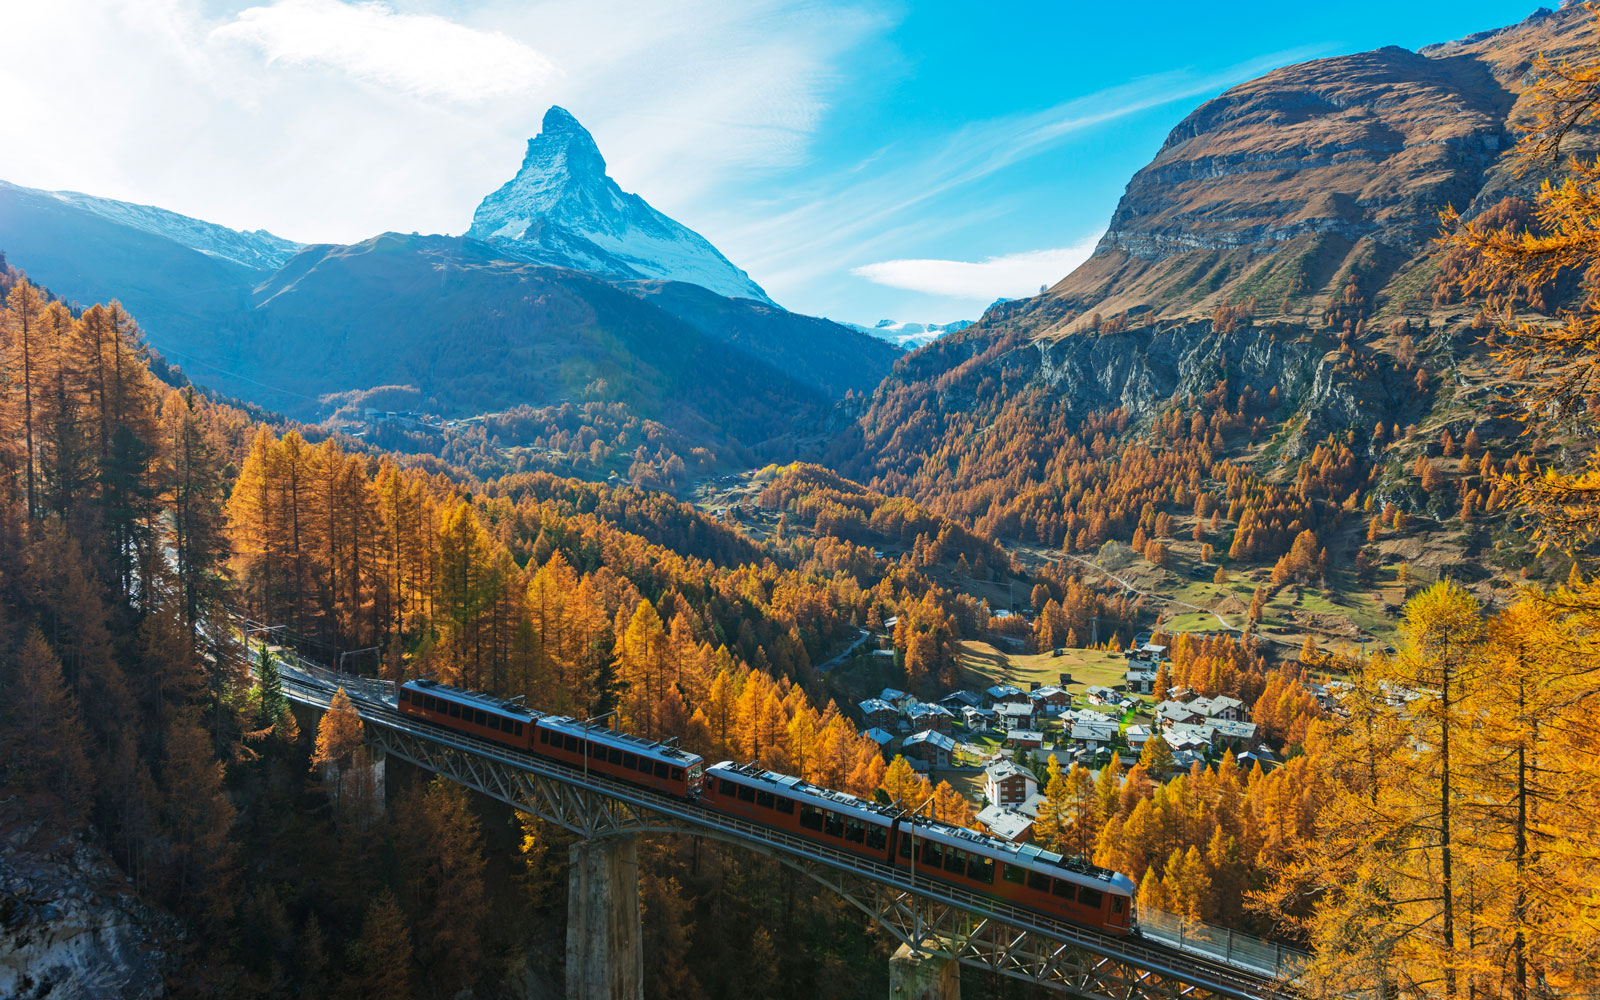 The Glacier Express train is known as the world's slowest express train, taking you on an 8 hour scenic journey.